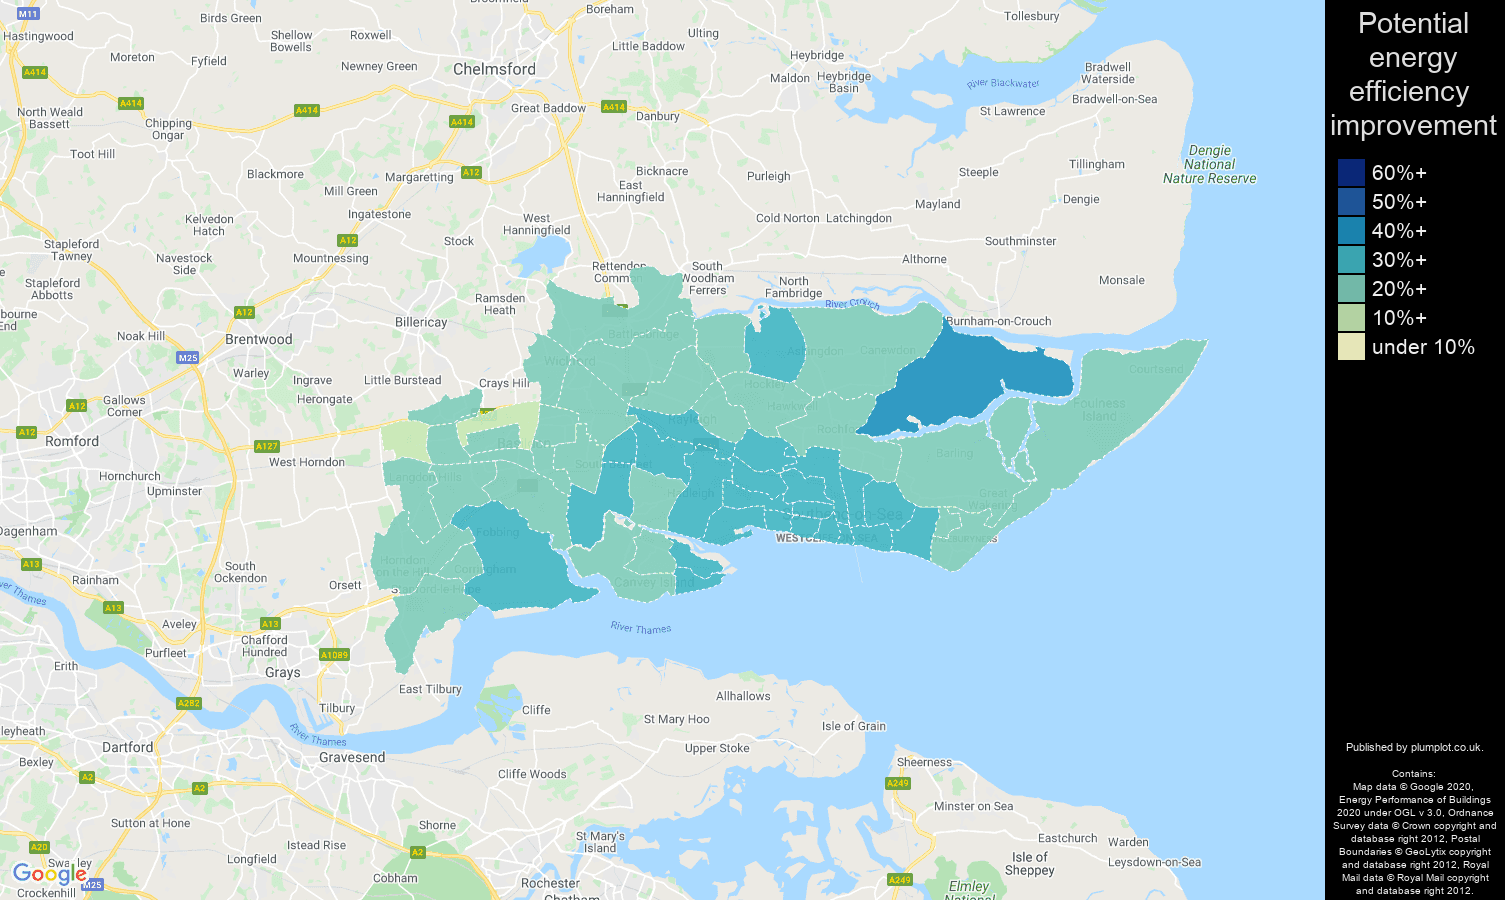 Southend on Sea map of potential energy efficiency improvement of houses